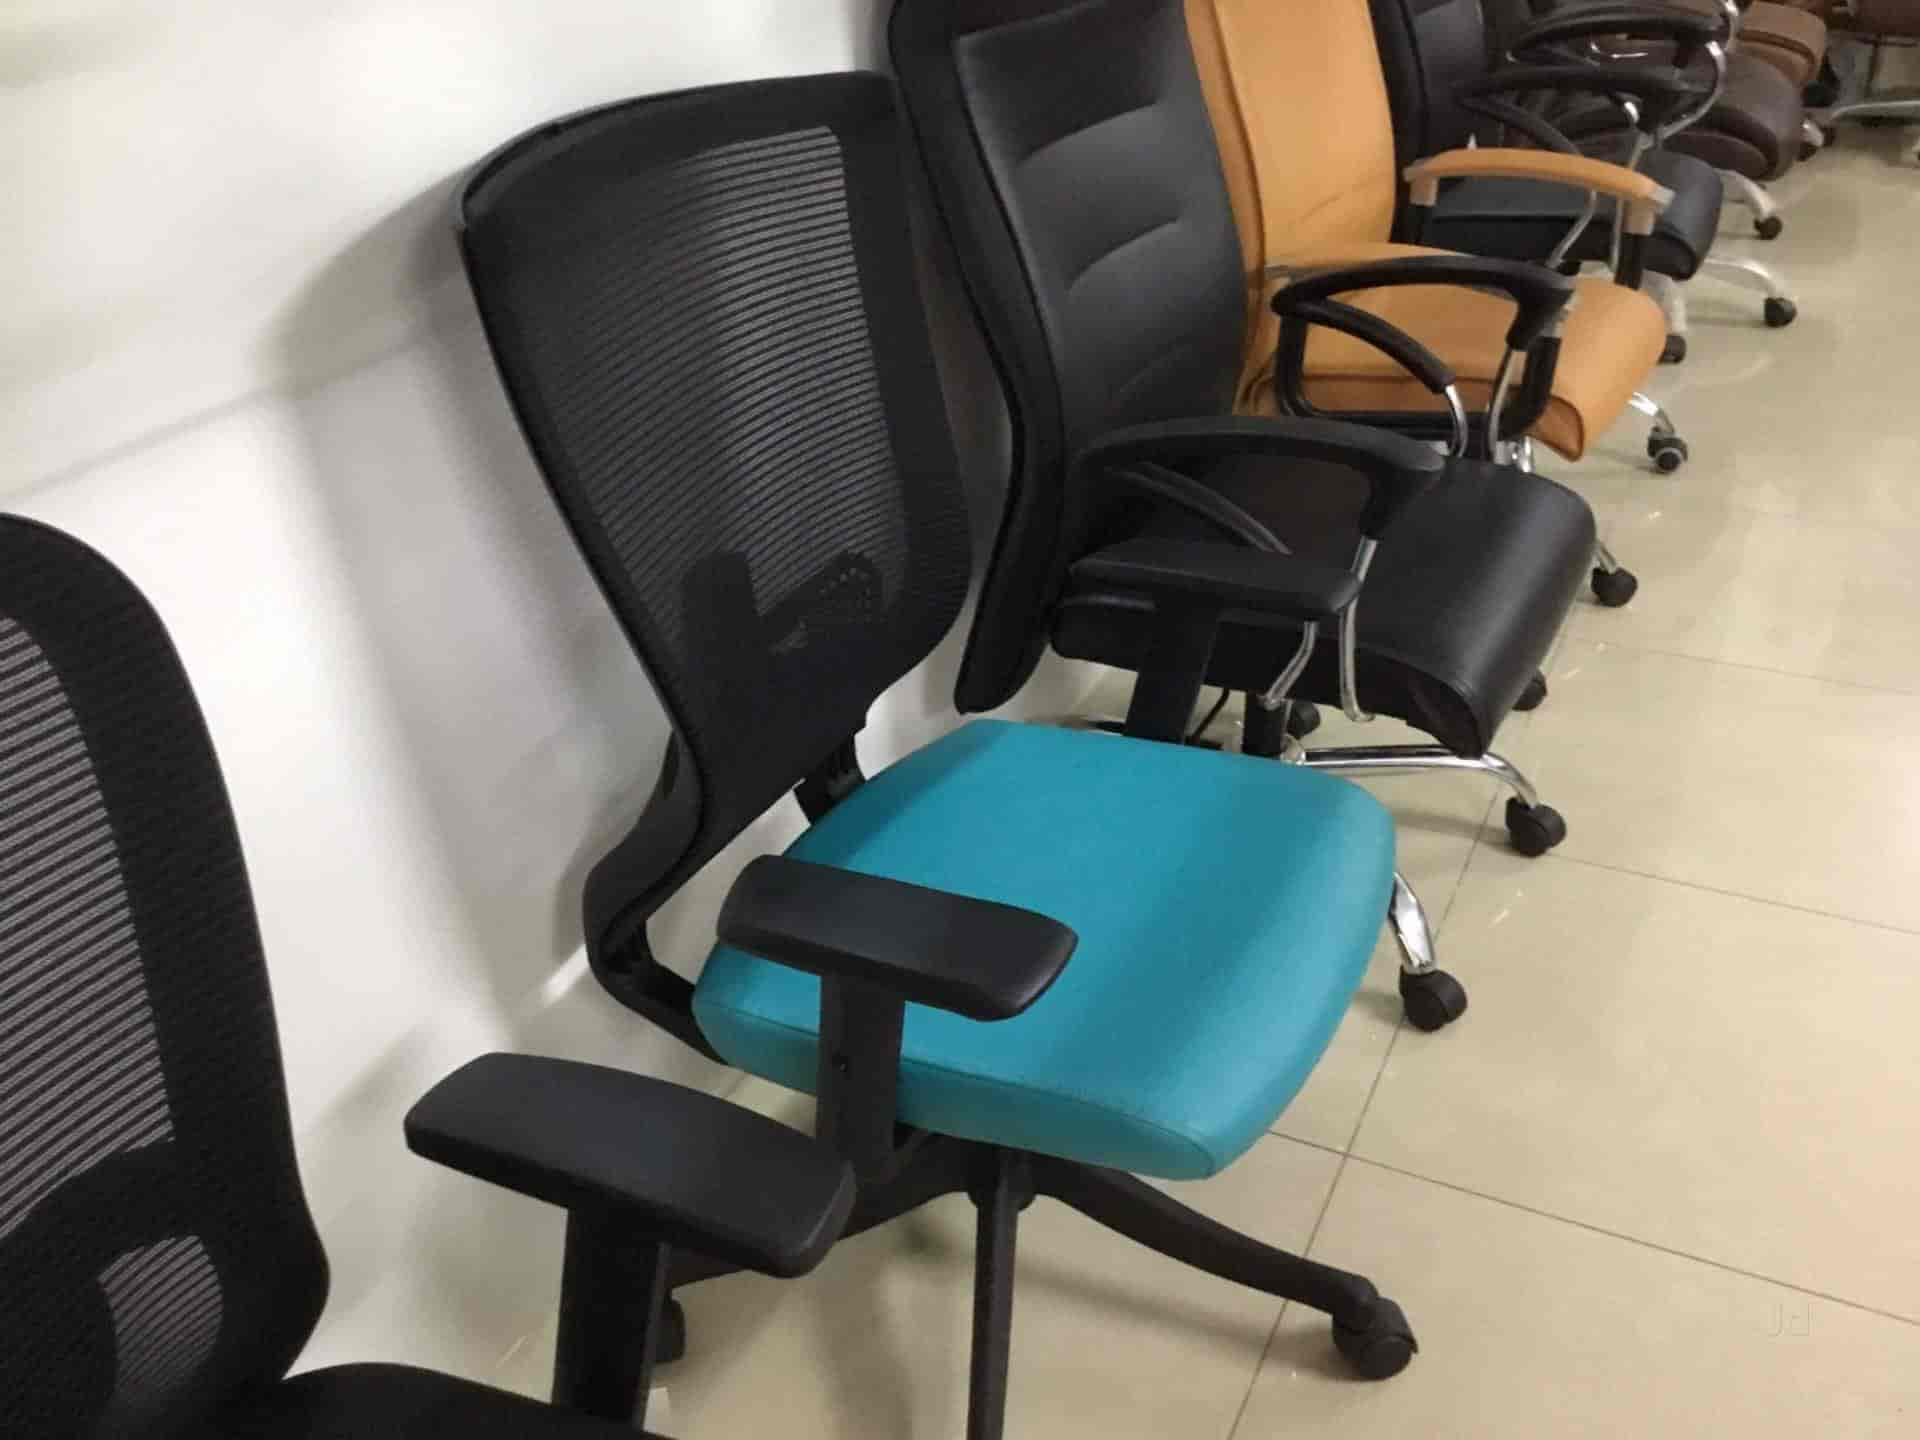 Satellite Chair Creative Chair World Satellite Chair Manufacturers In Ahmedabad